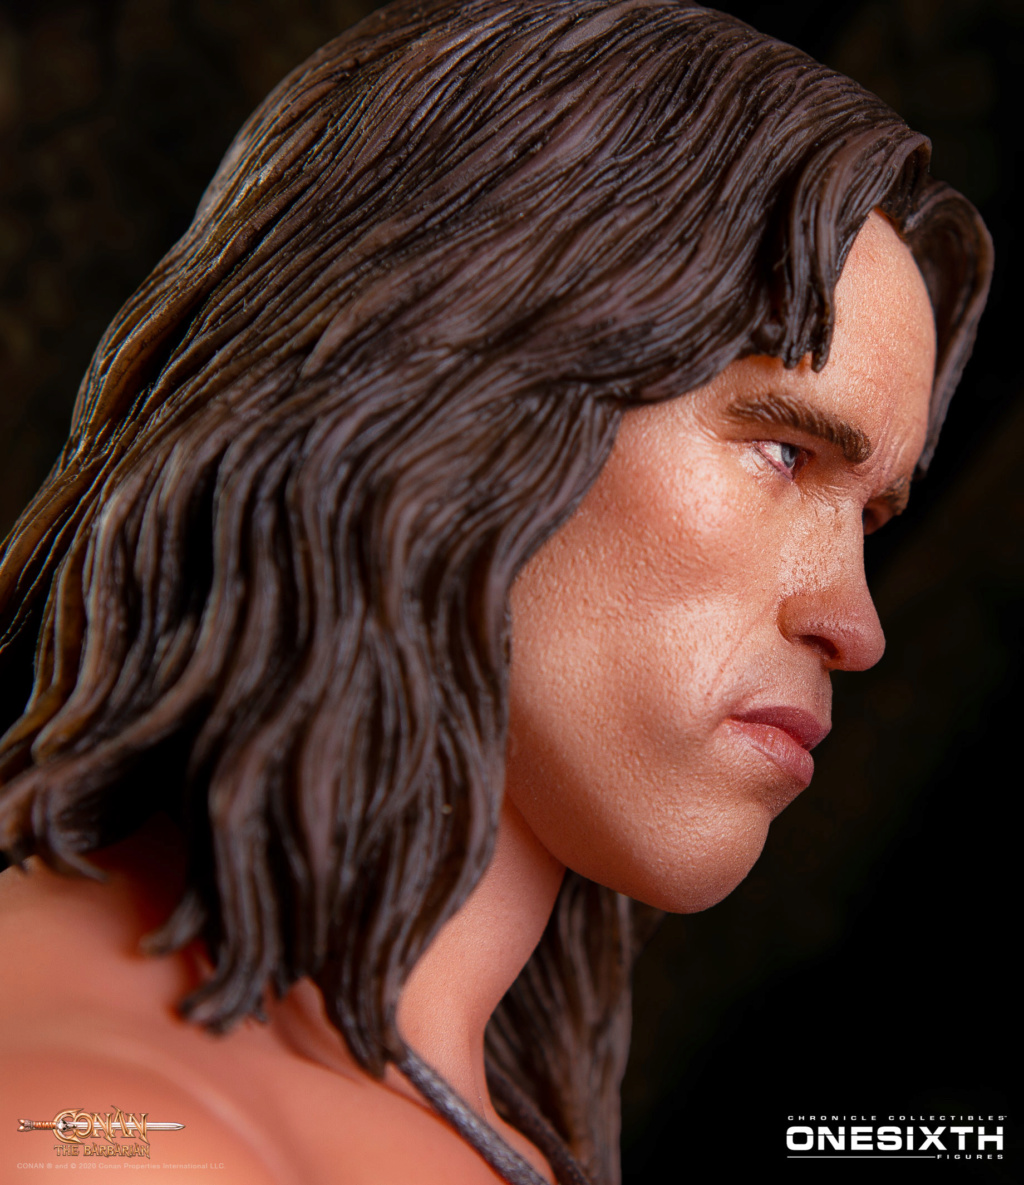 NEW PRODUCT: Chronicle Collectibles: OneSixth Conan the Barbarian Figure Chroni21